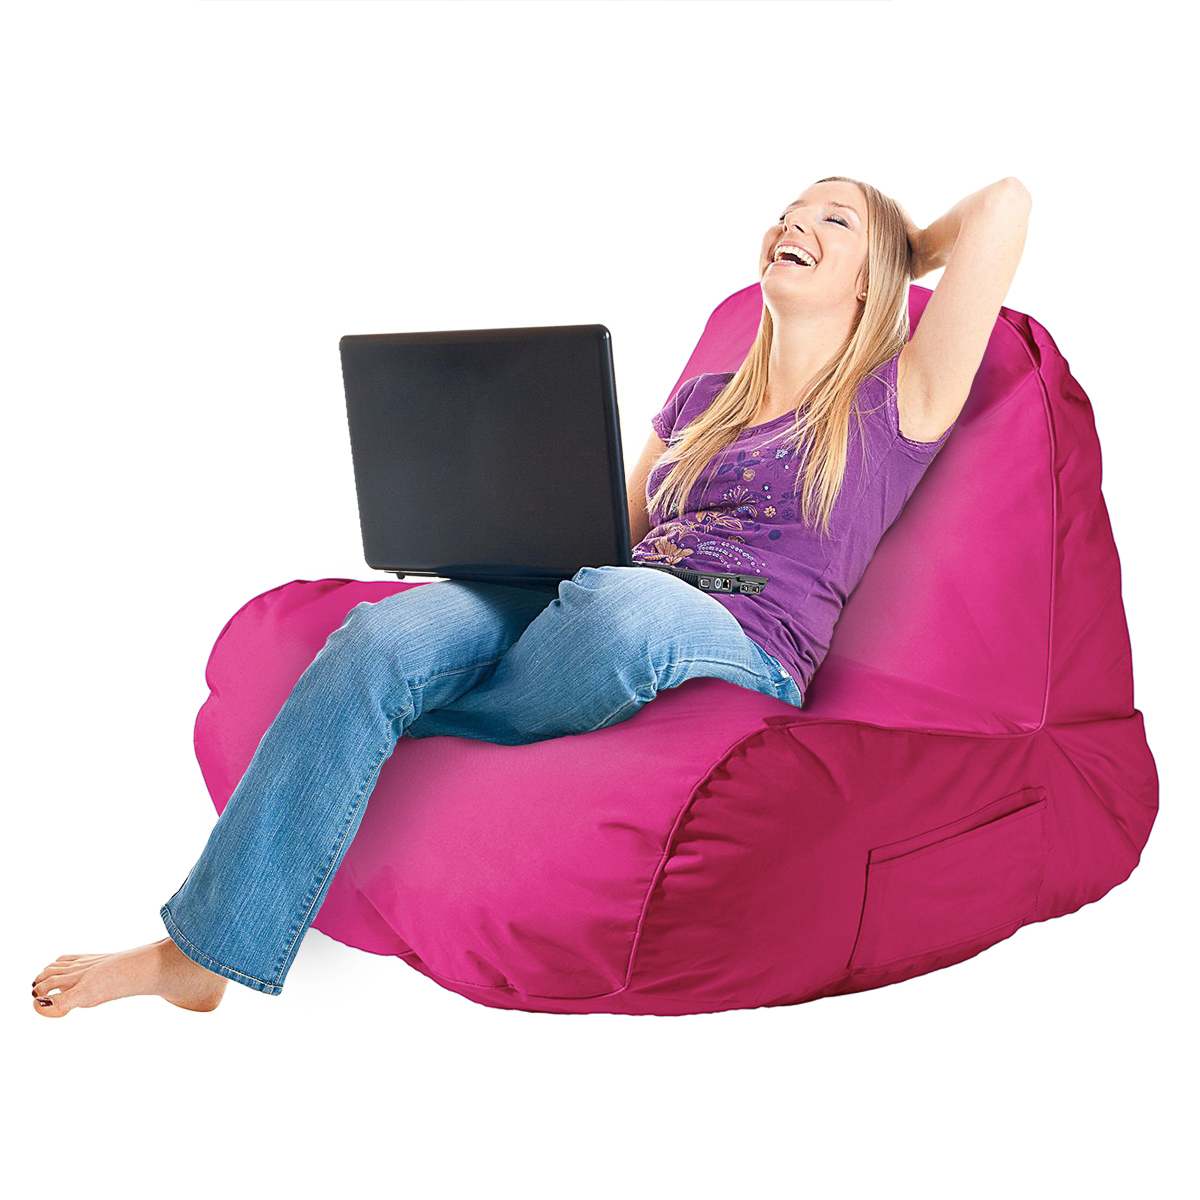 Original Comfy Chair Indoor Outdoor Beanbag Dorm Lounger Seat Video Gaming Adult